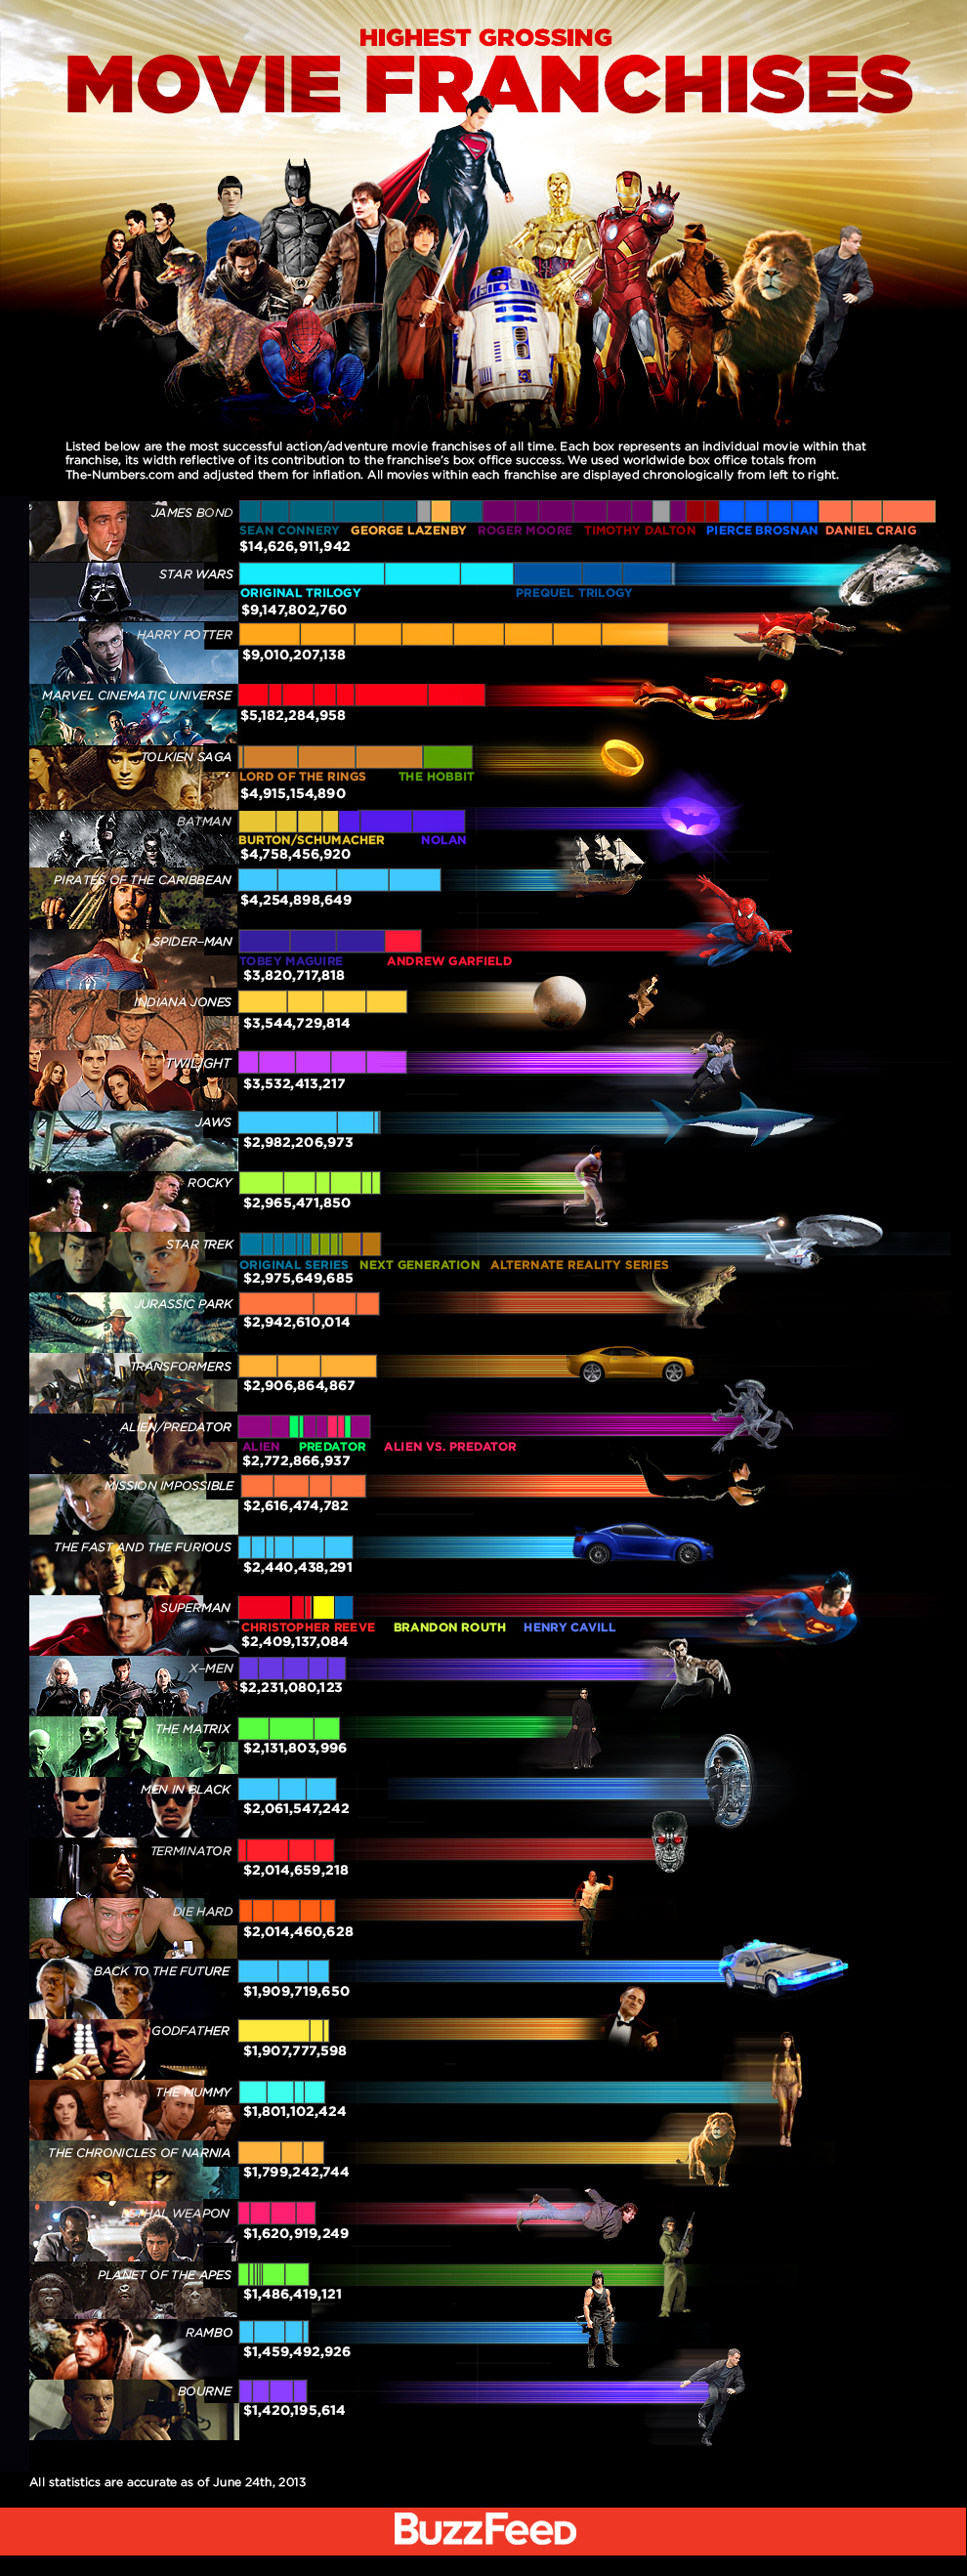 The Highest Grossing Movie Franchises Buzzfeed News